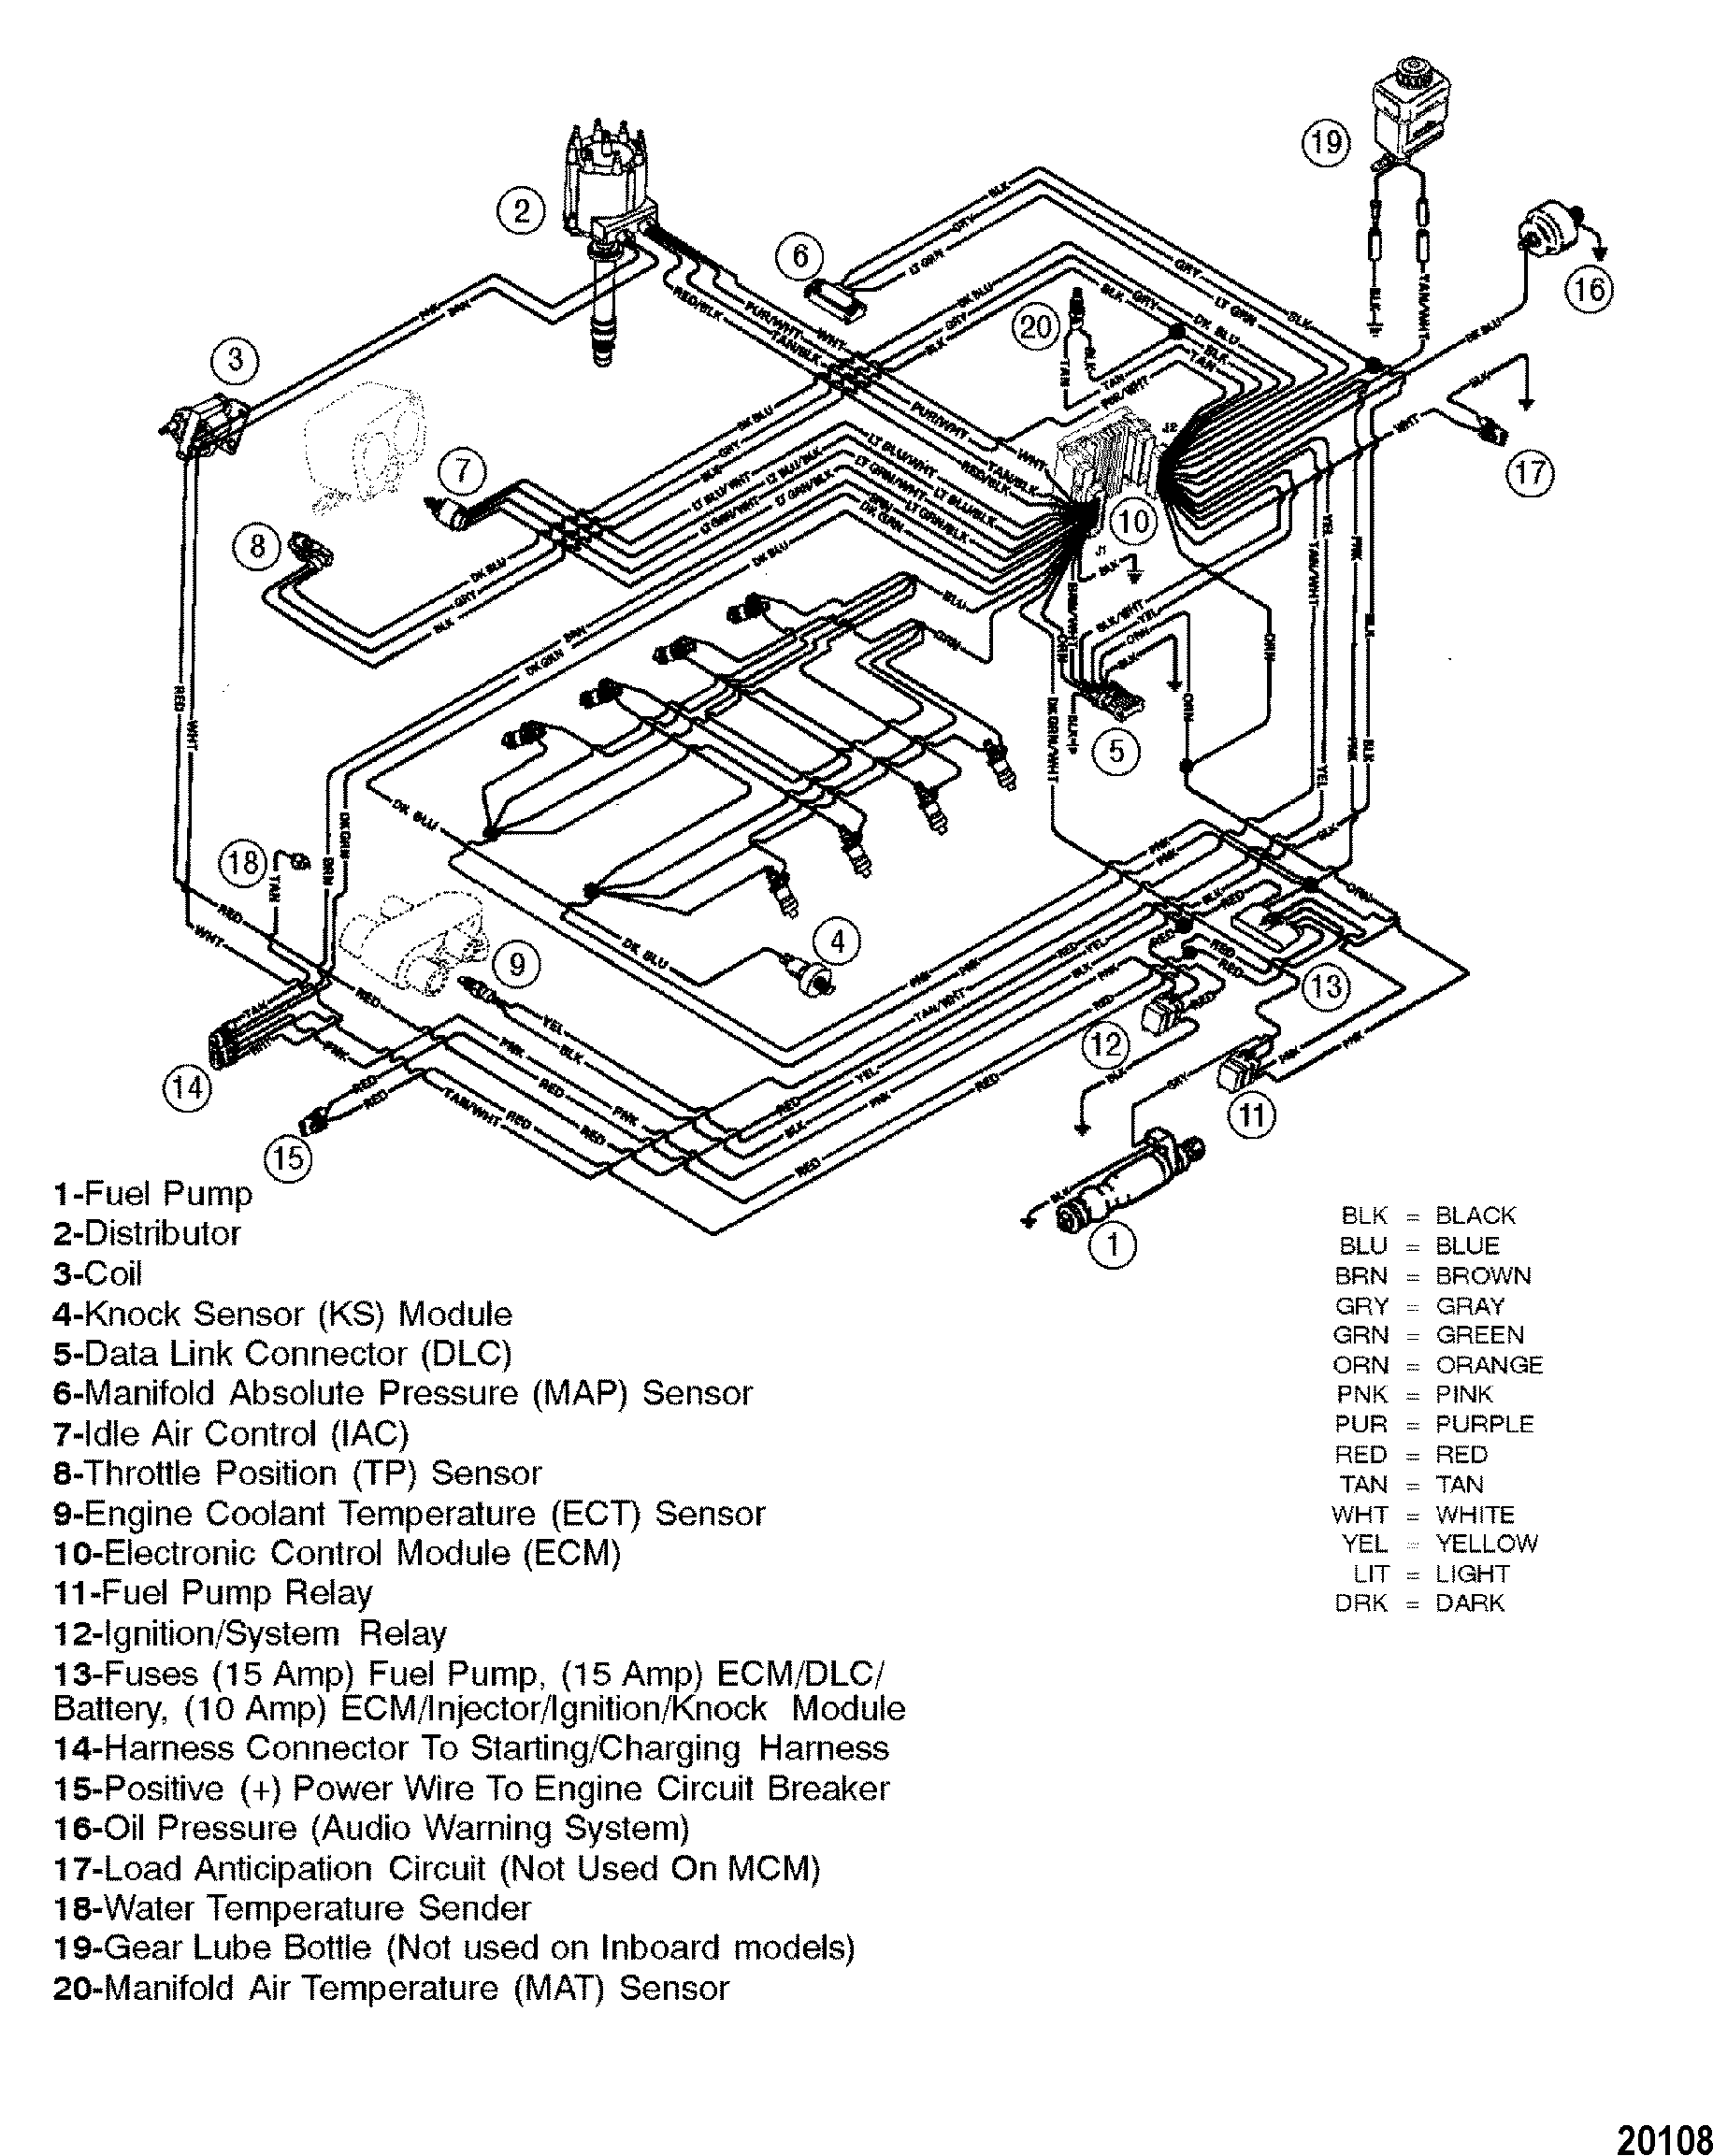 20108 cp performance wiring harness (efi) 1996 mercruiser 5.7 wiring diagram at panicattacktreatment.co